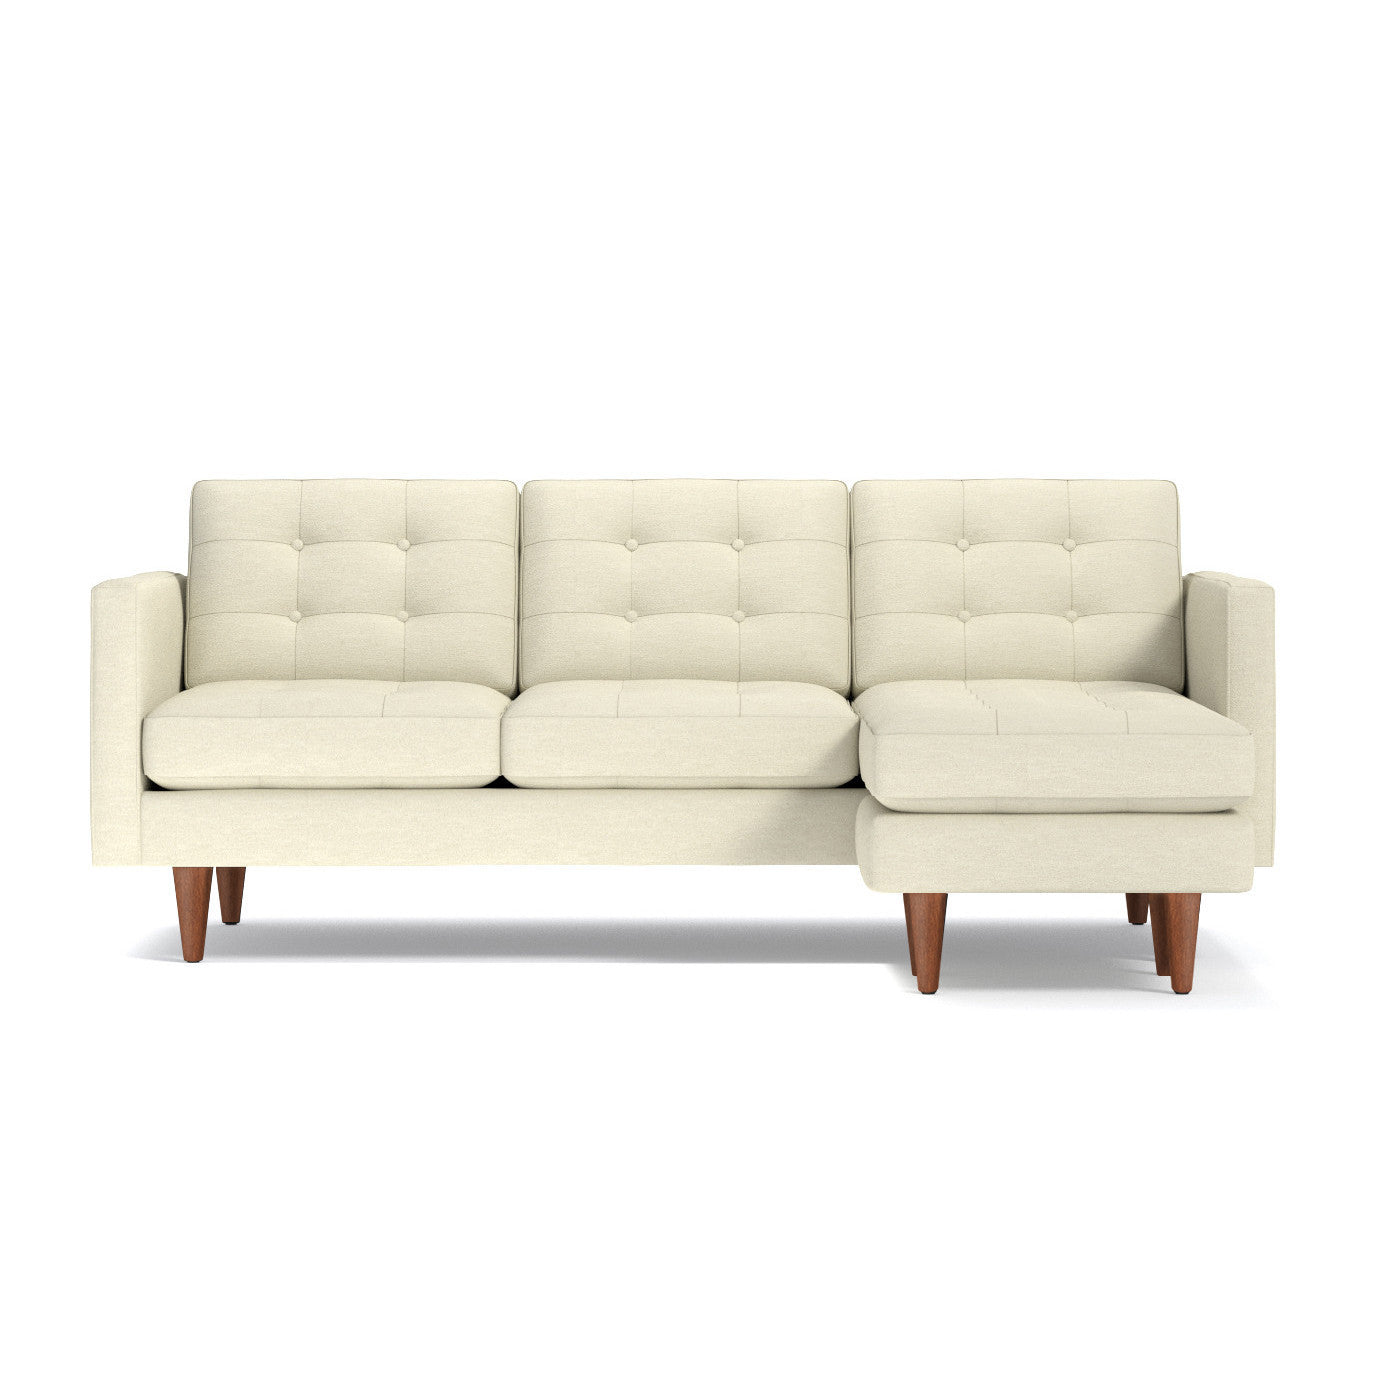 Lexington Reversible Chaise Sofa  sc 1 st  Apt2B : cream chaise sofa - Sectionals, Sofas & Couches